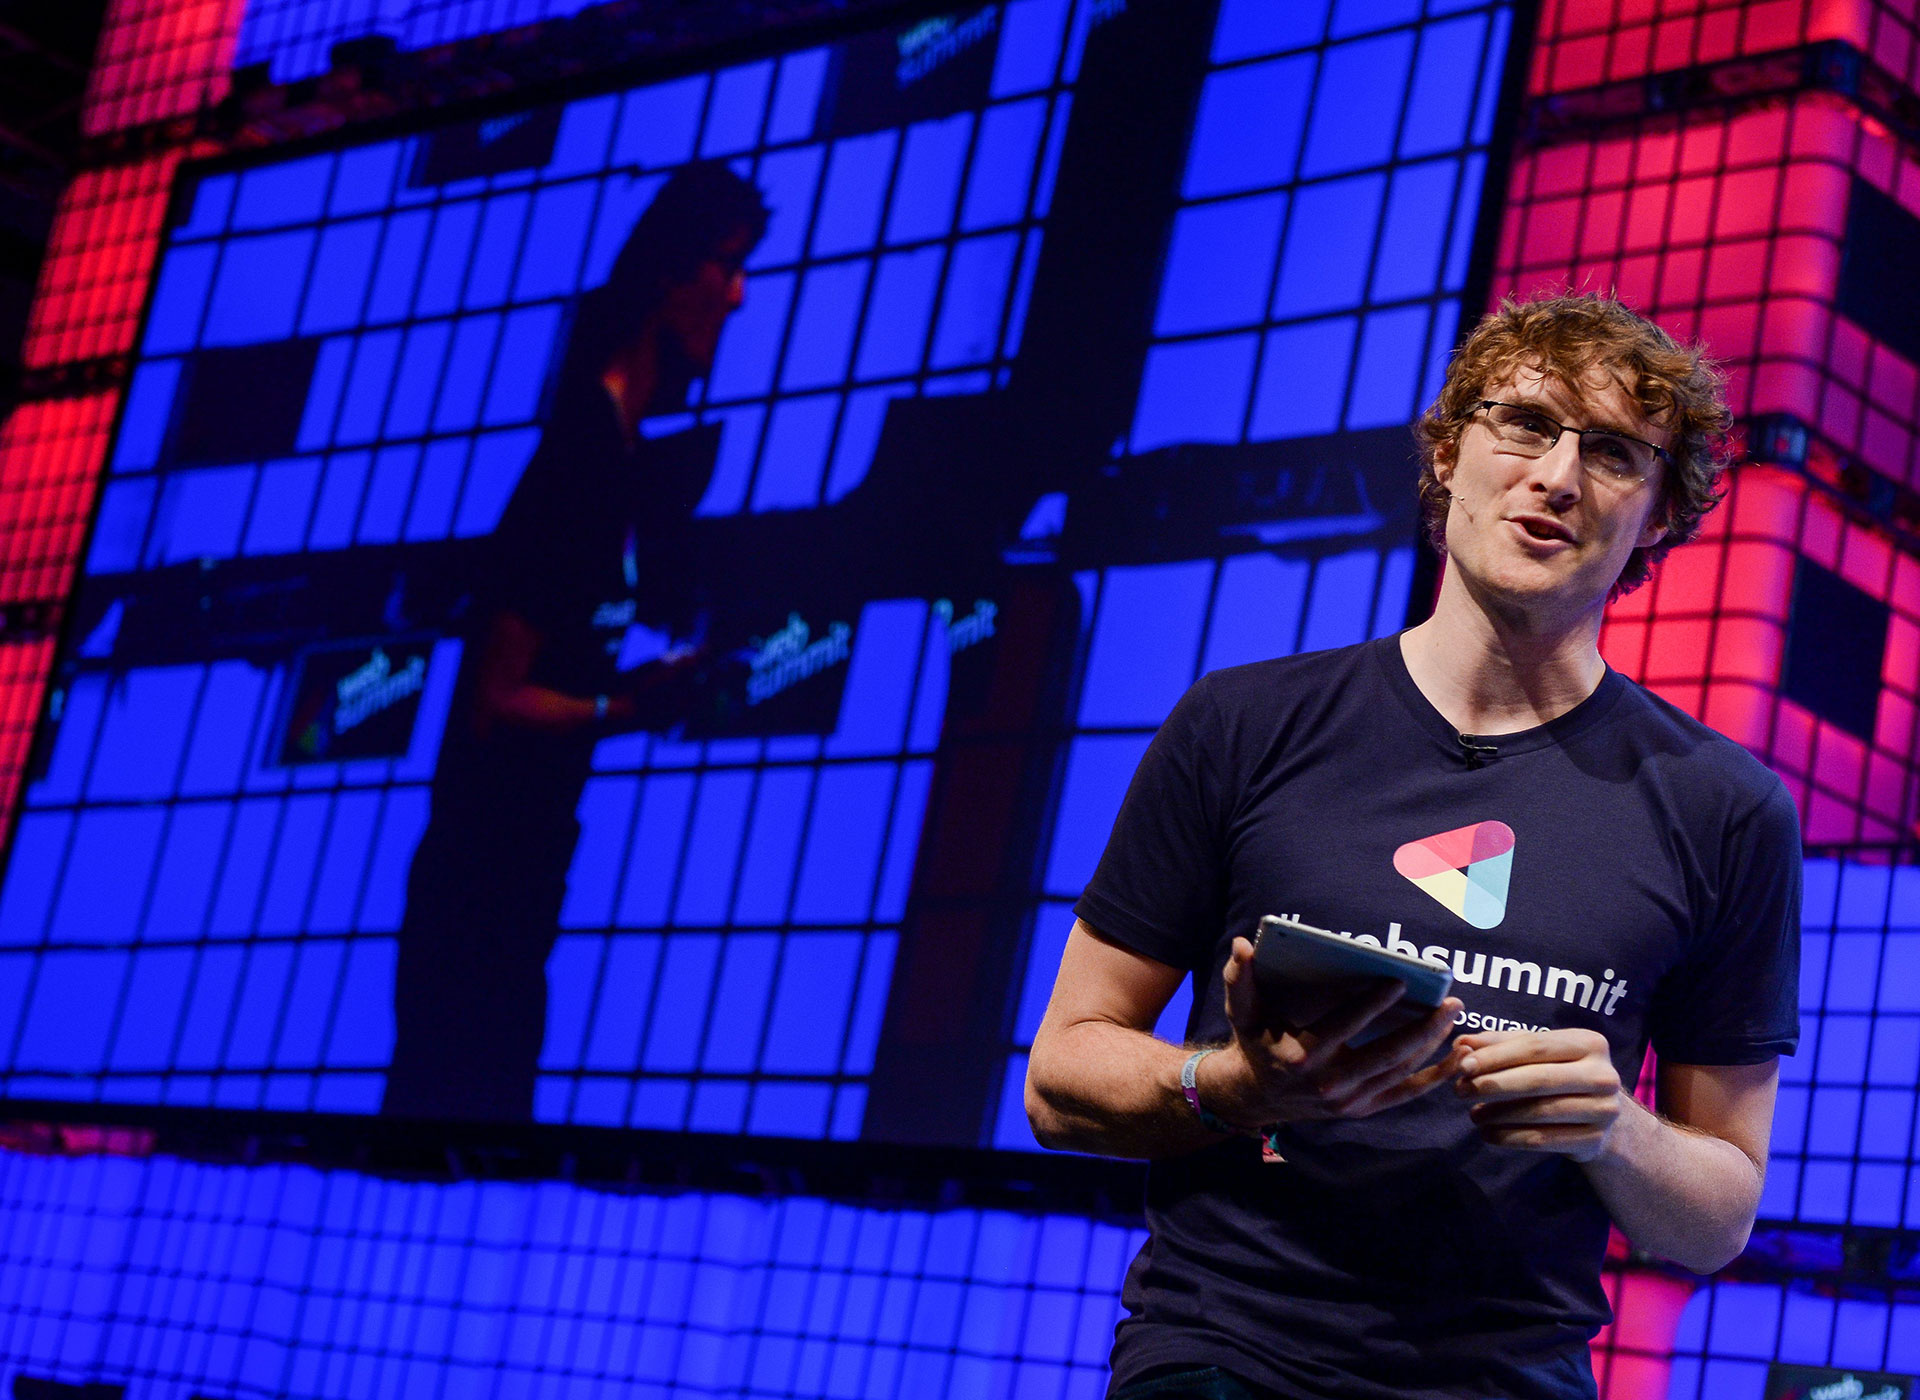 Web Summit CEO: Hybrid virtual-physical events are the future for conferences